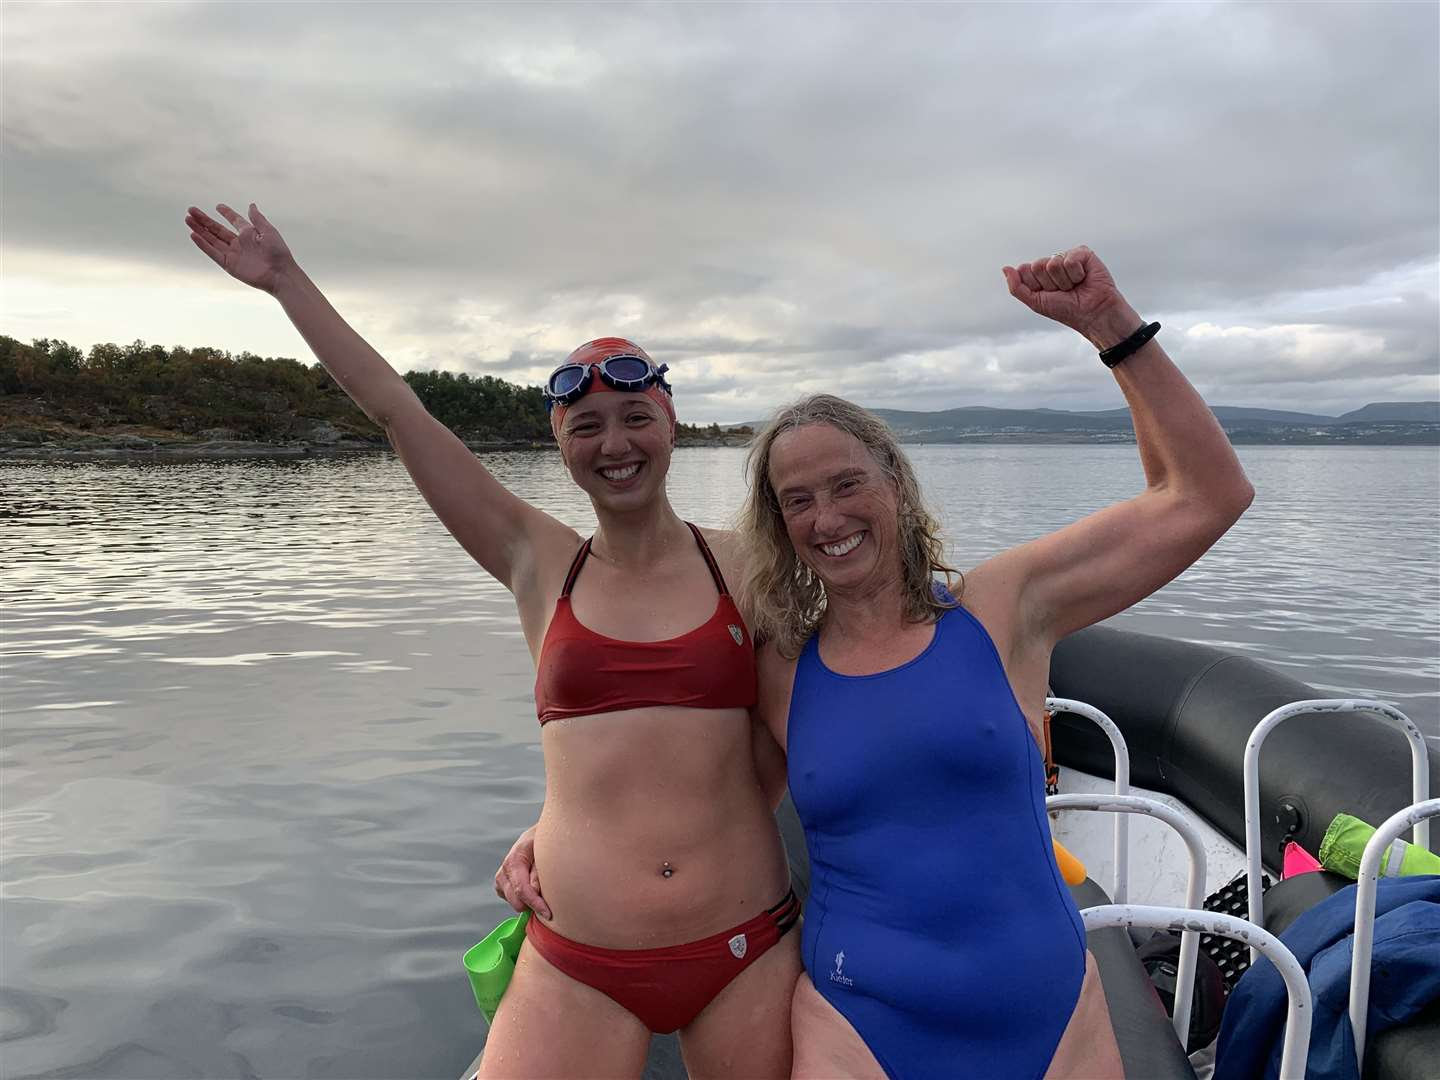 Ellen and Sarah Taylor completed the swim without wetsuits